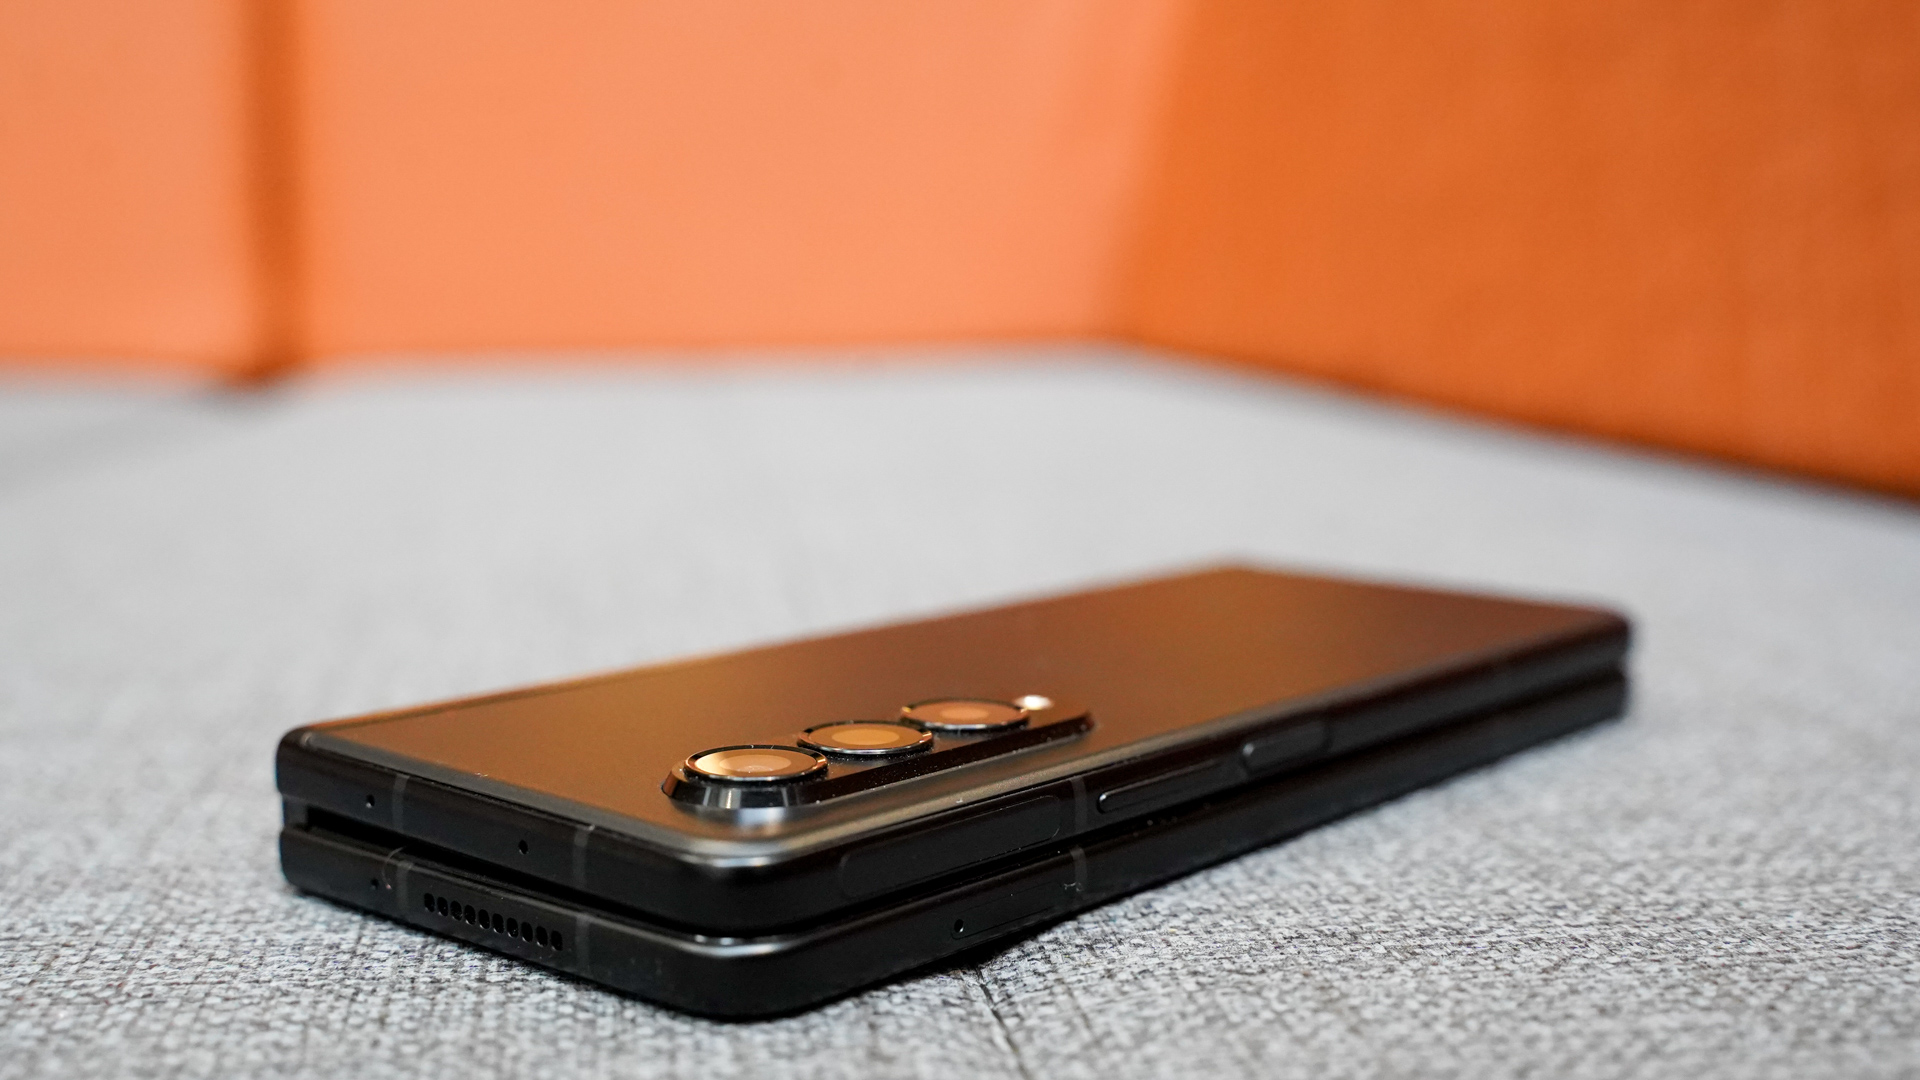 Samsung Galaxy Z Fold 3 top right corner closed on a couch.